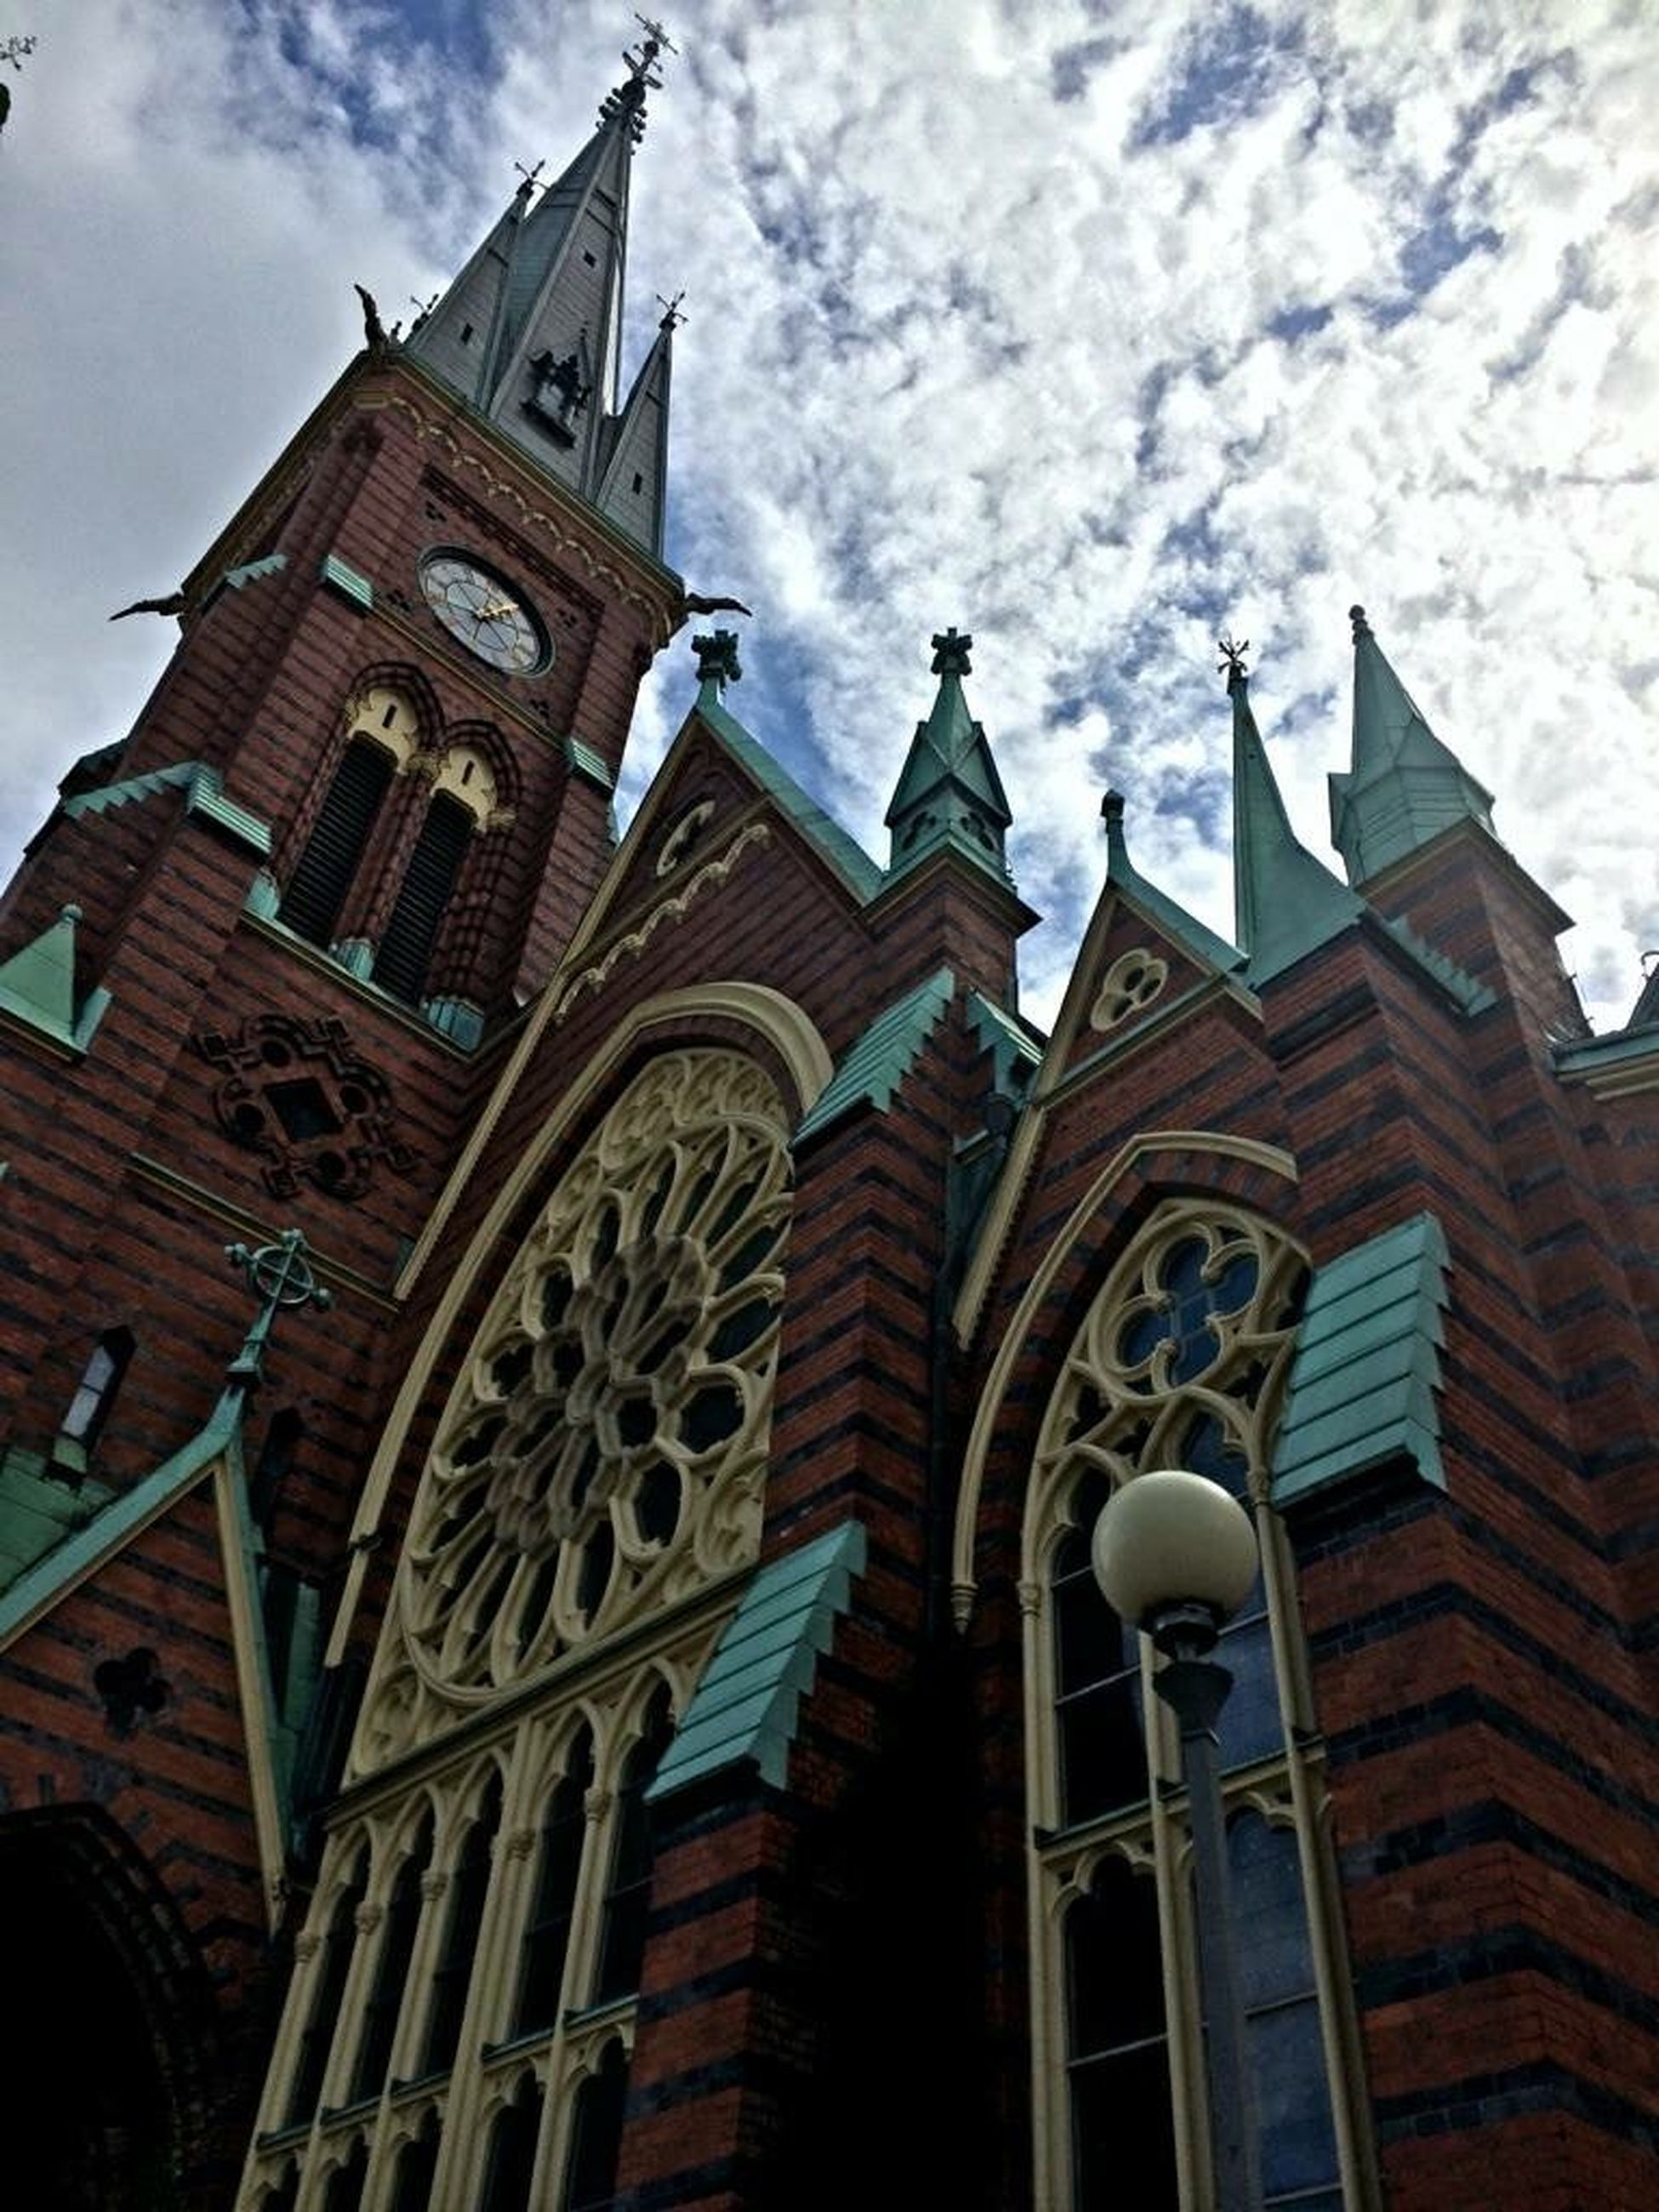 architecture, building exterior, low angle view, built structure, sky, church, religion, cloud - sky, place of worship, window, cloud, spirituality, cloudy, day, outdoors, facade, high section, building